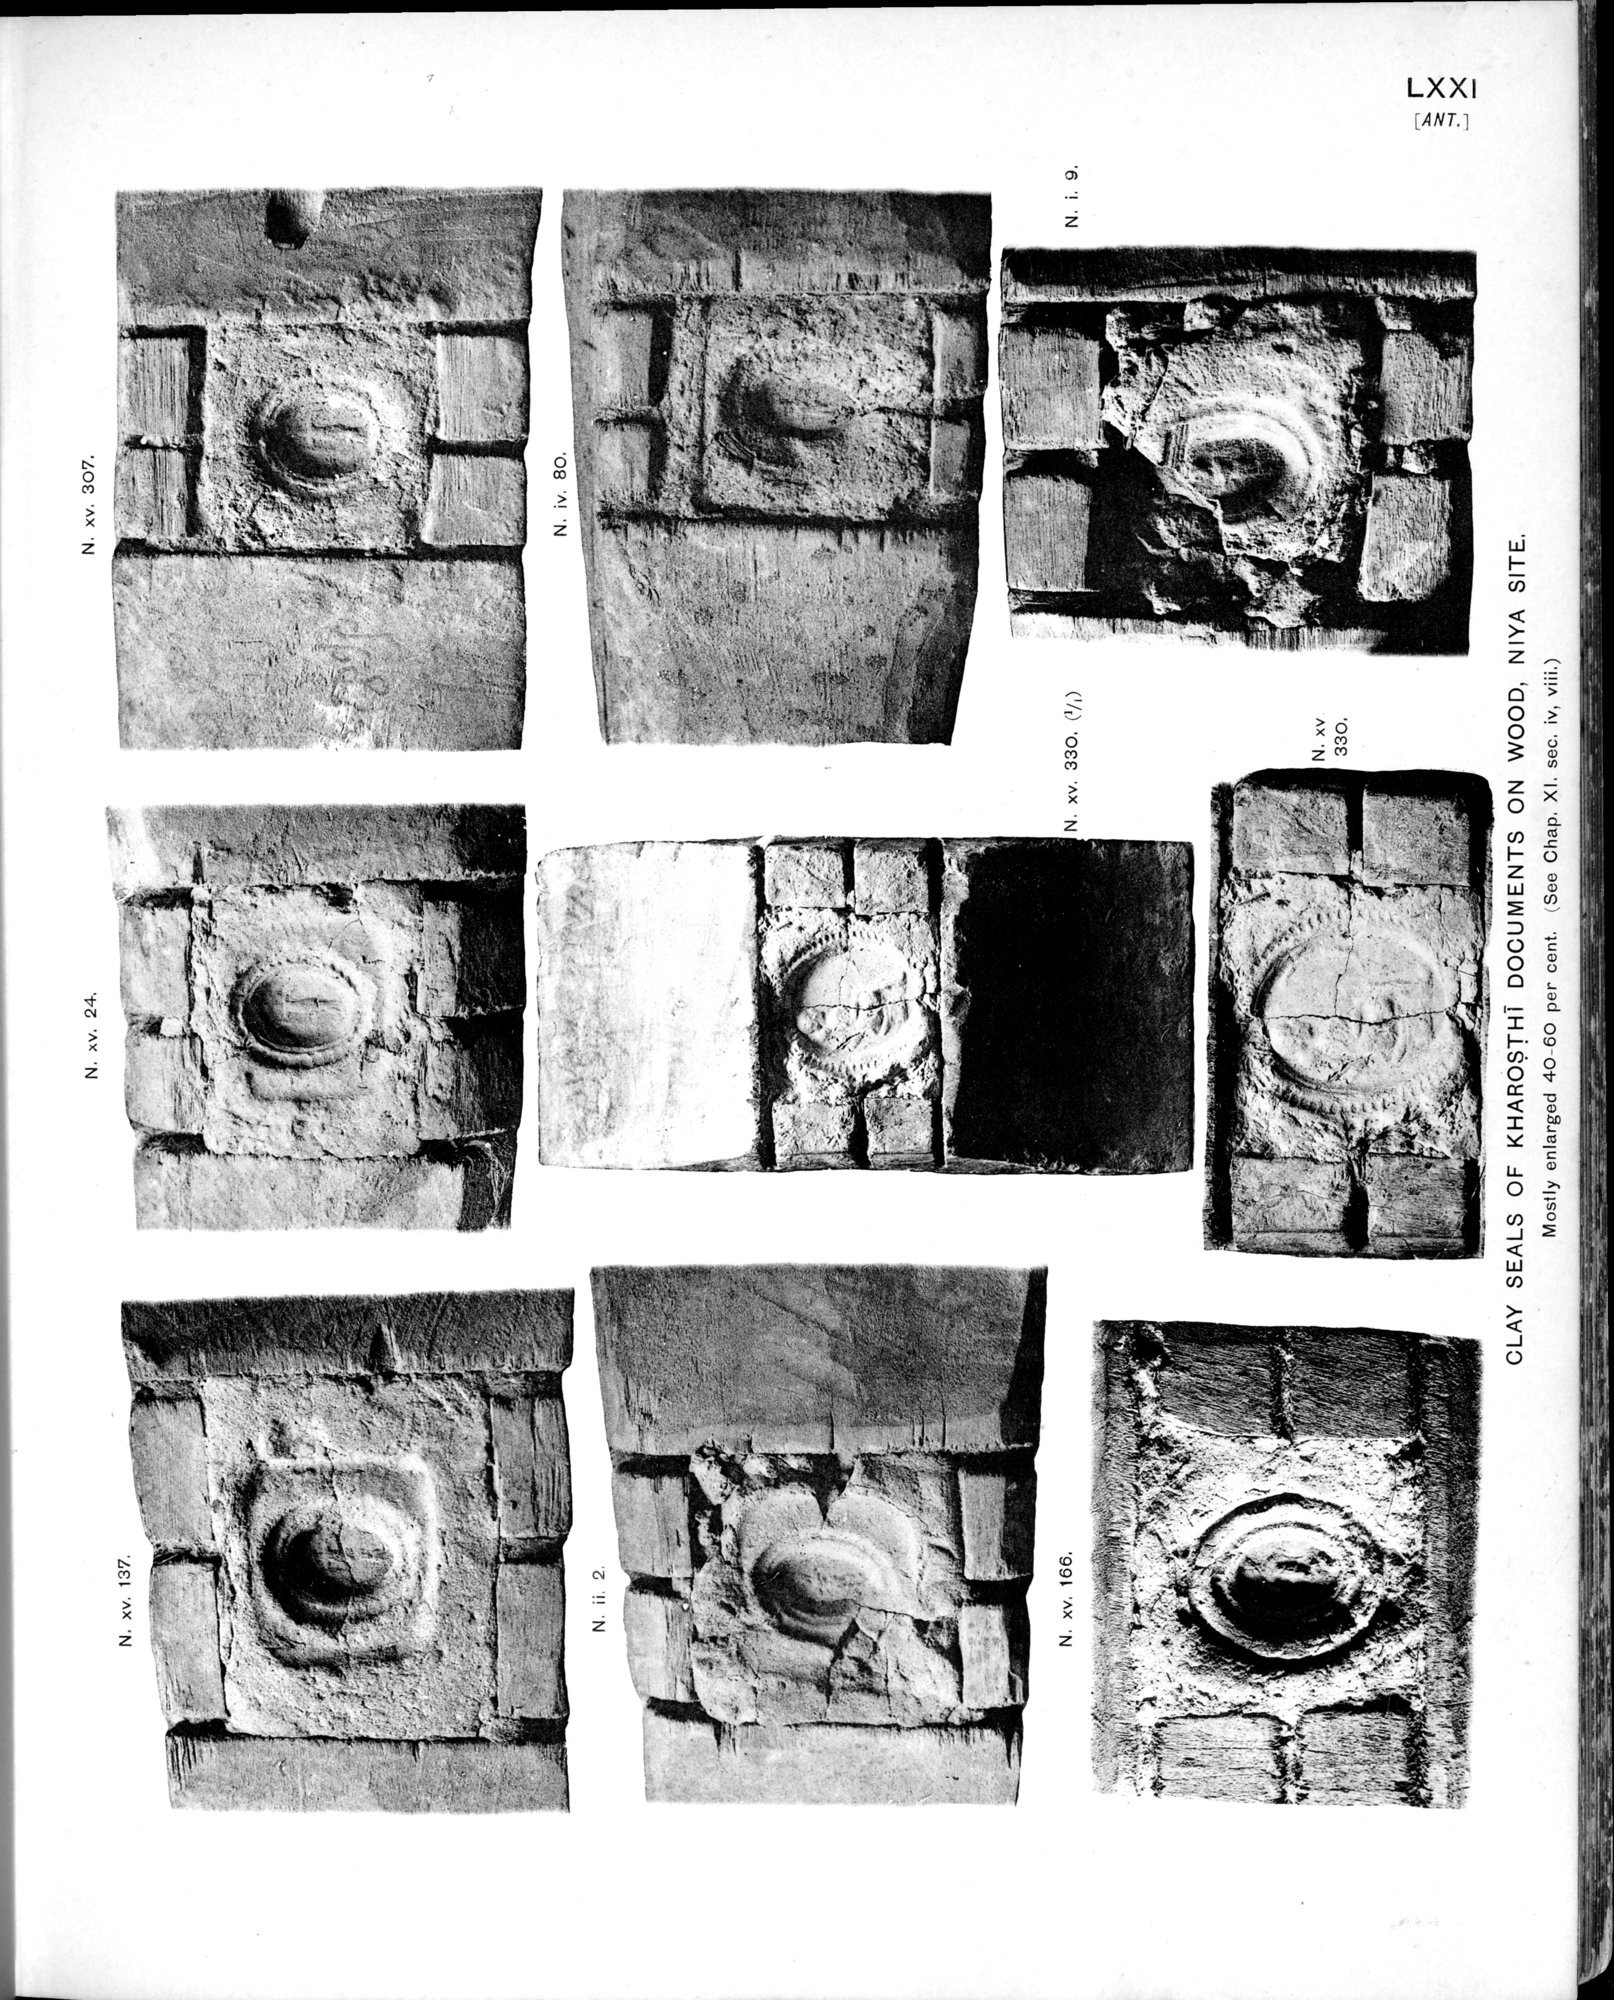 Ancient Khotan : vol.2 / Page 153 (Grayscale High Resolution Image)